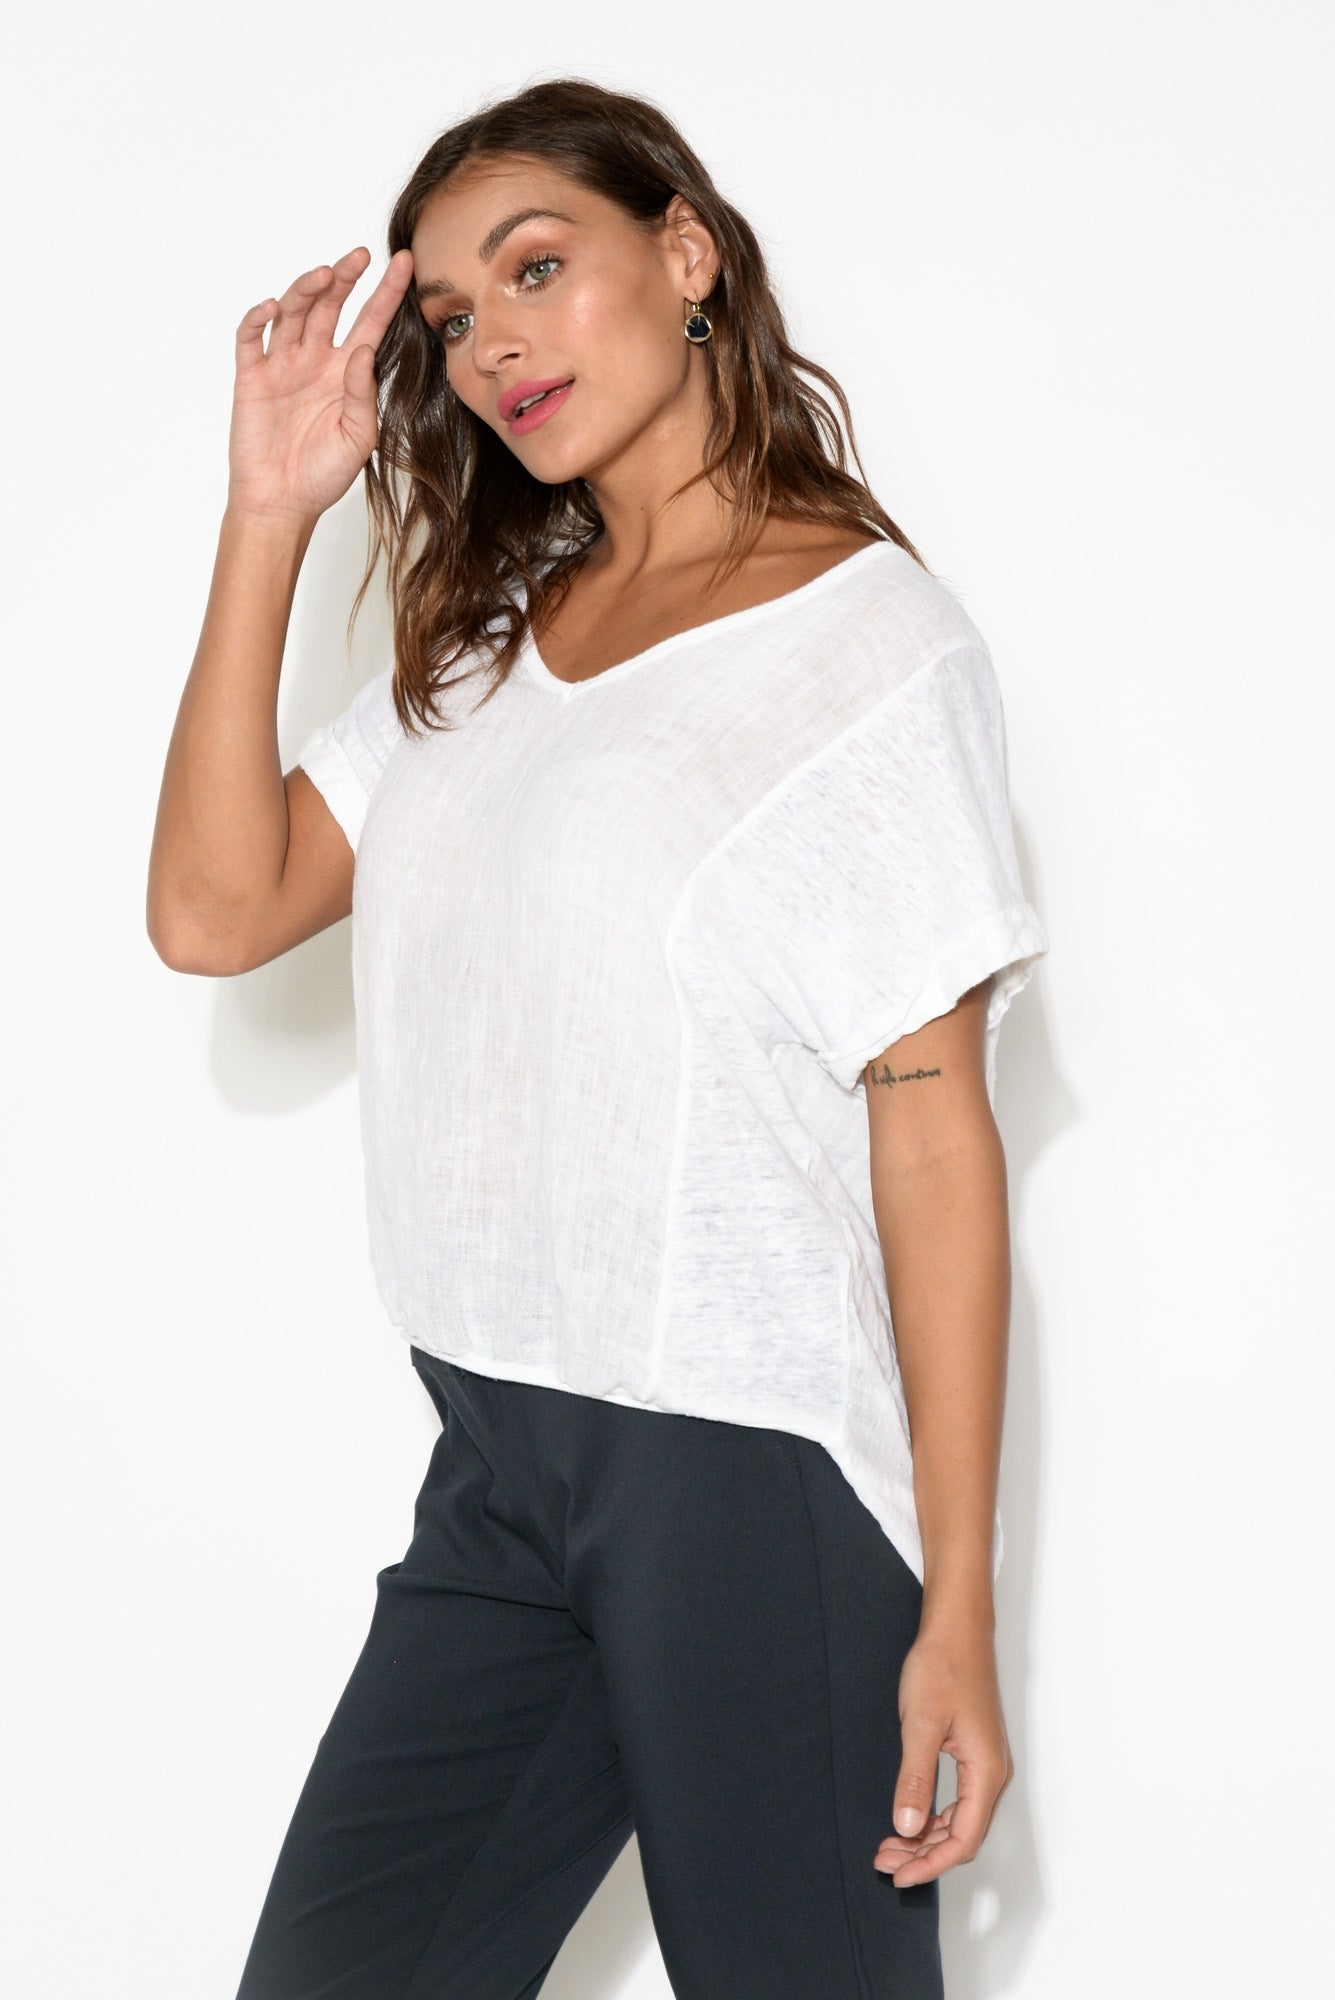 Effie White Linen Tee